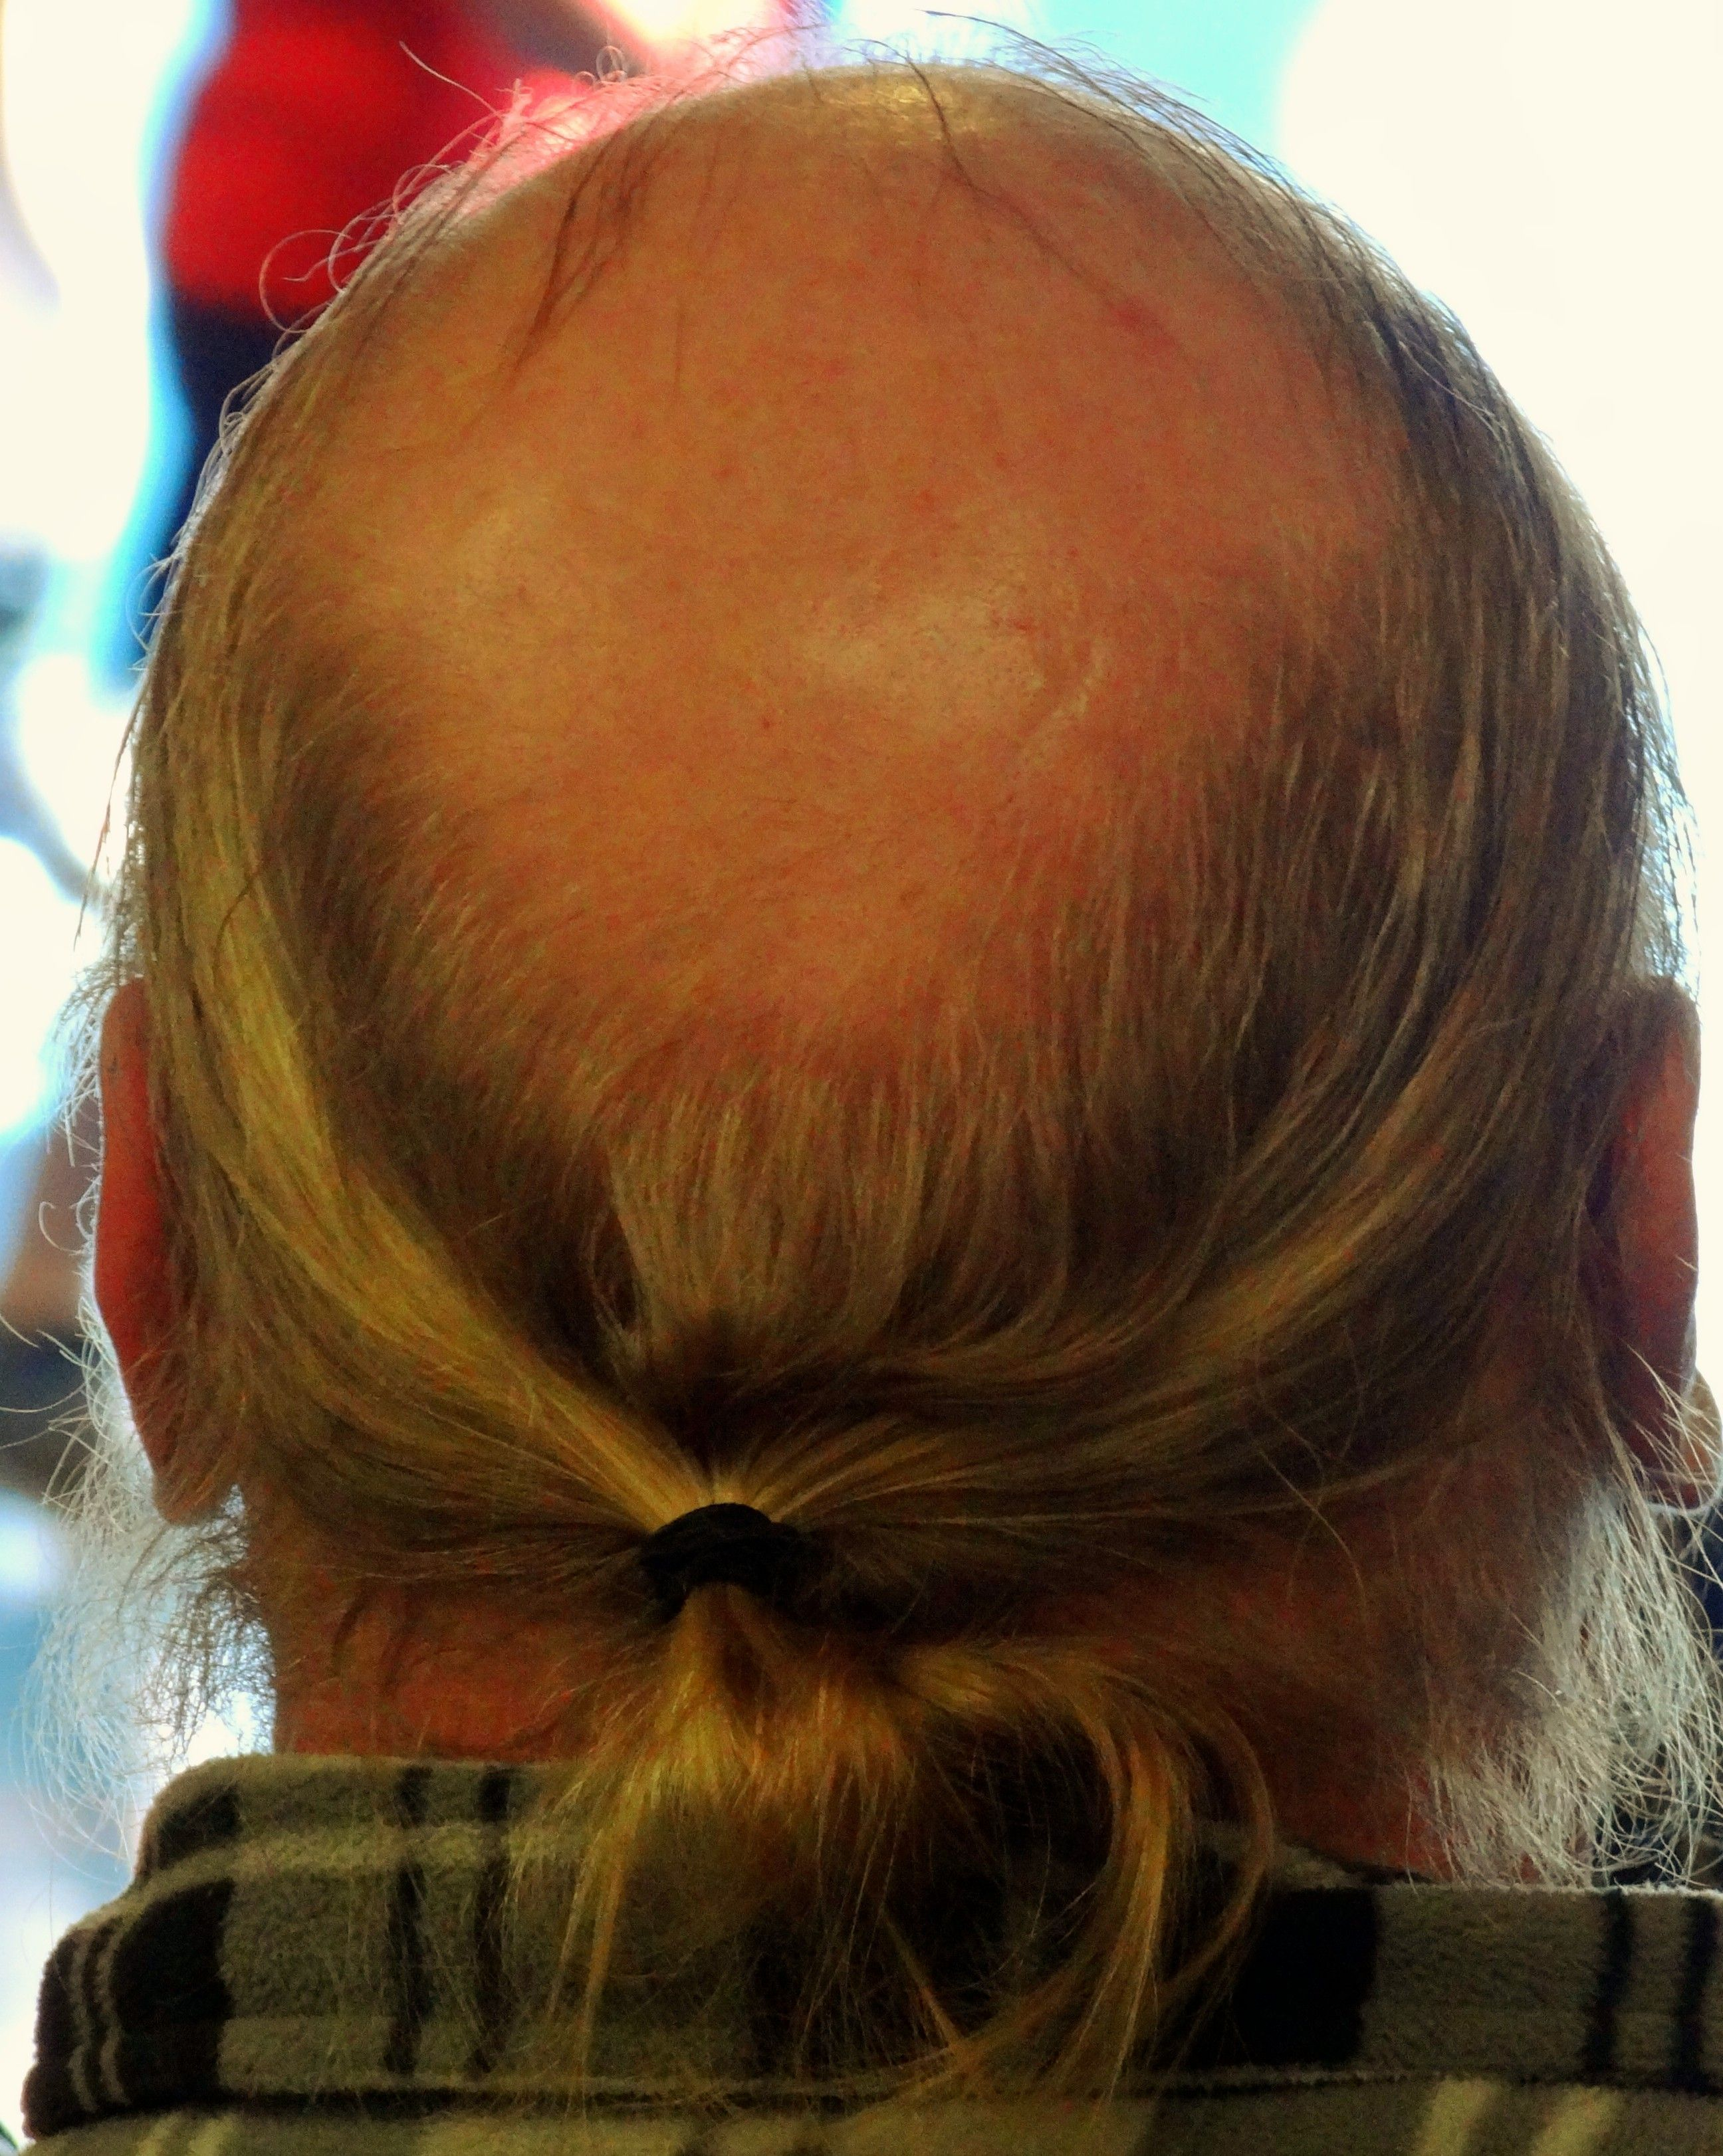 Bald Guy With Ponytail But Why Guys With Ponytails Funny Family Photos Bald Men